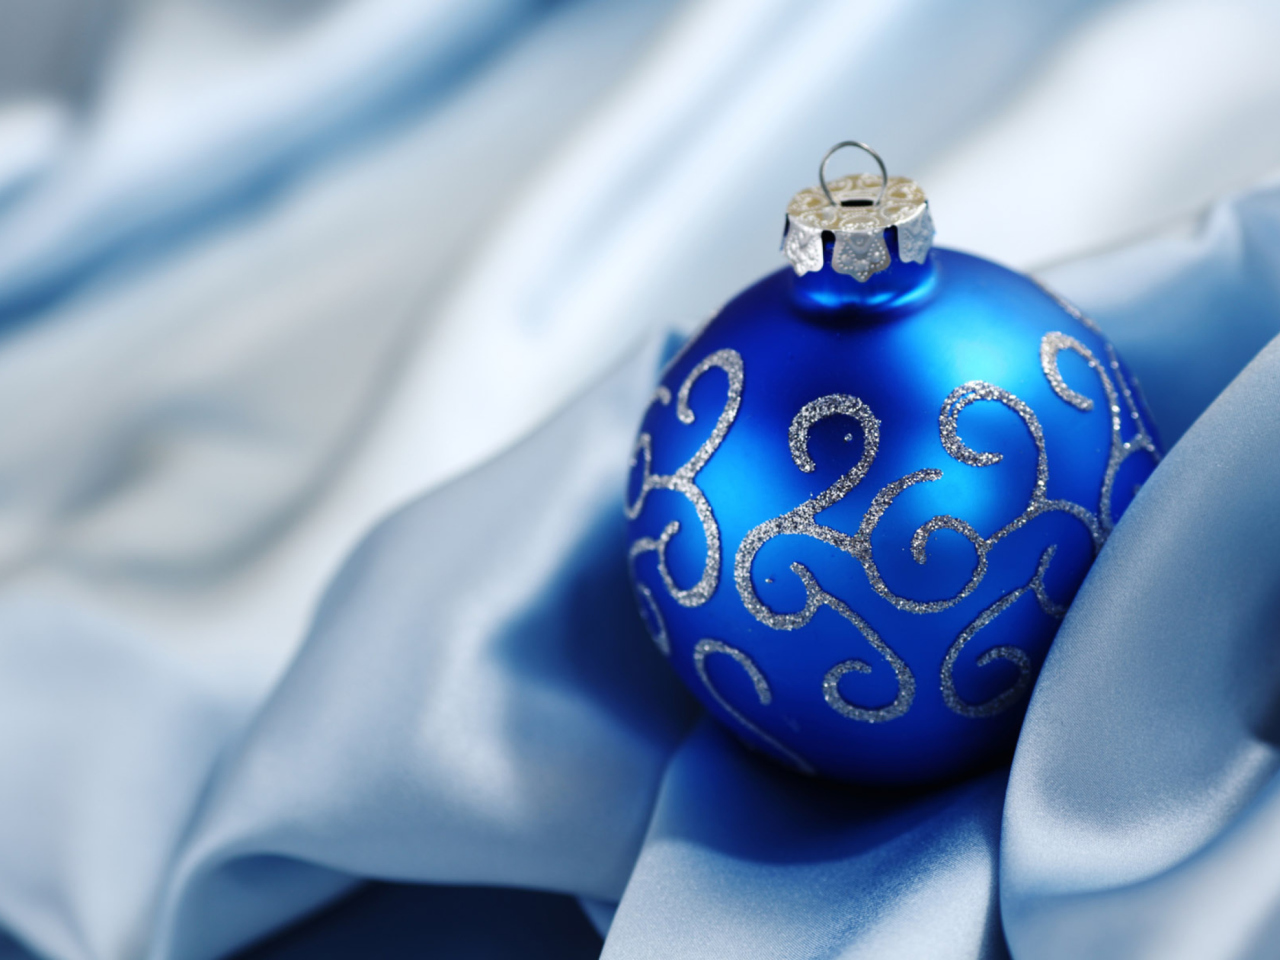 Christmas Decorations wallpaper 1280x960